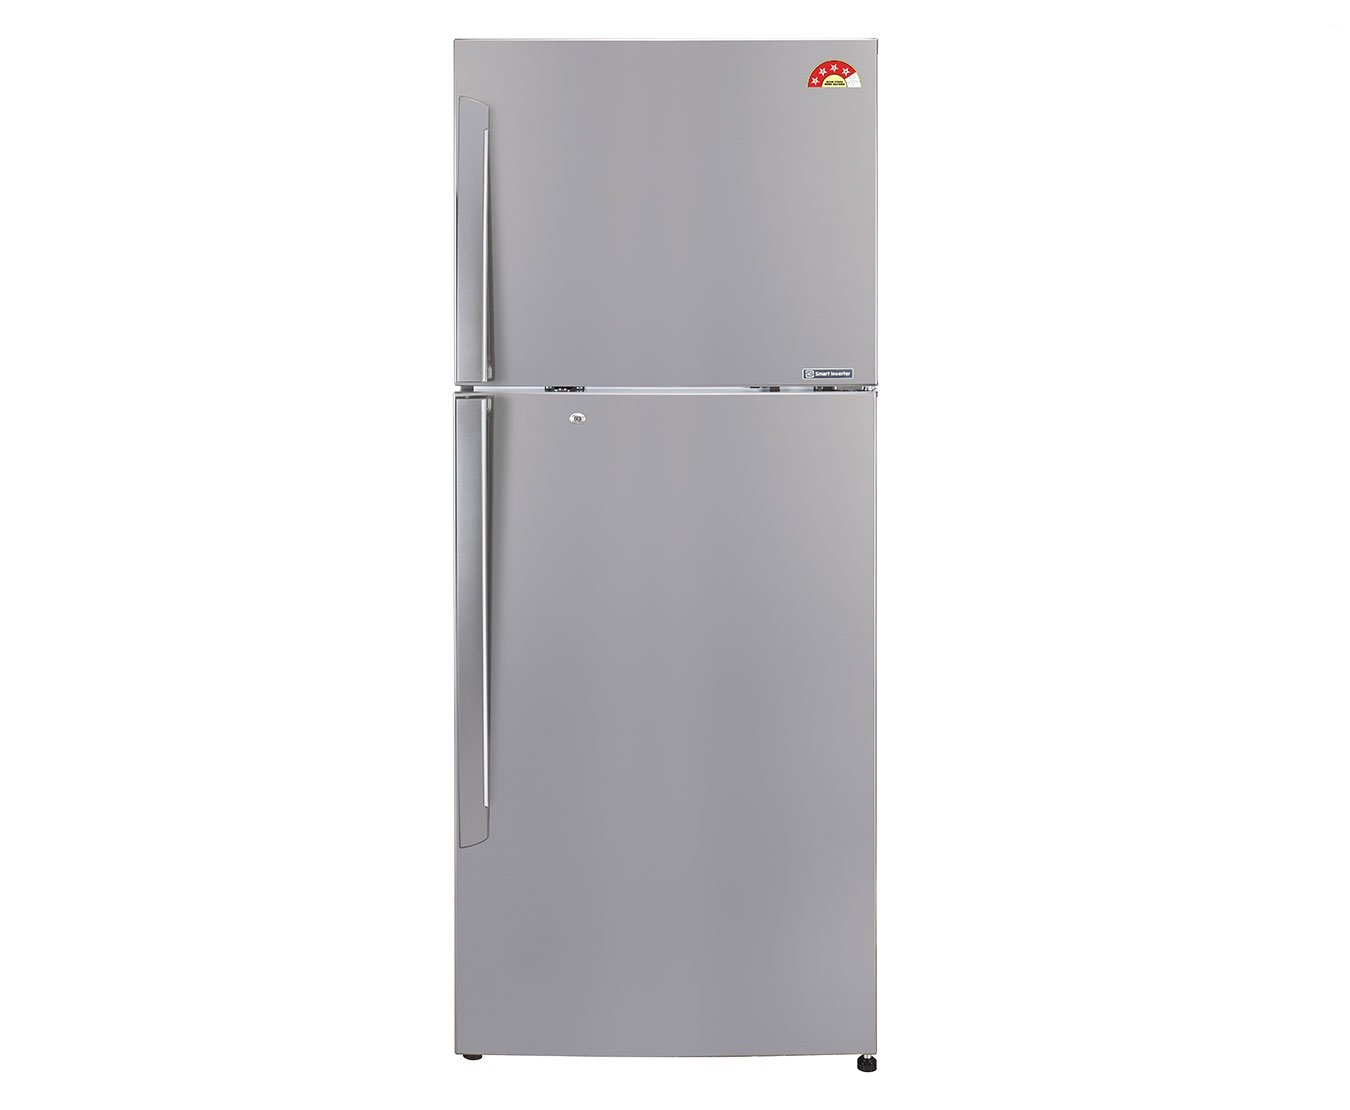 LG GL-I322RPZL Frost-free Double-door Refrigerator (308 Ltrs, 4 Star Rating, Shinny Steel)